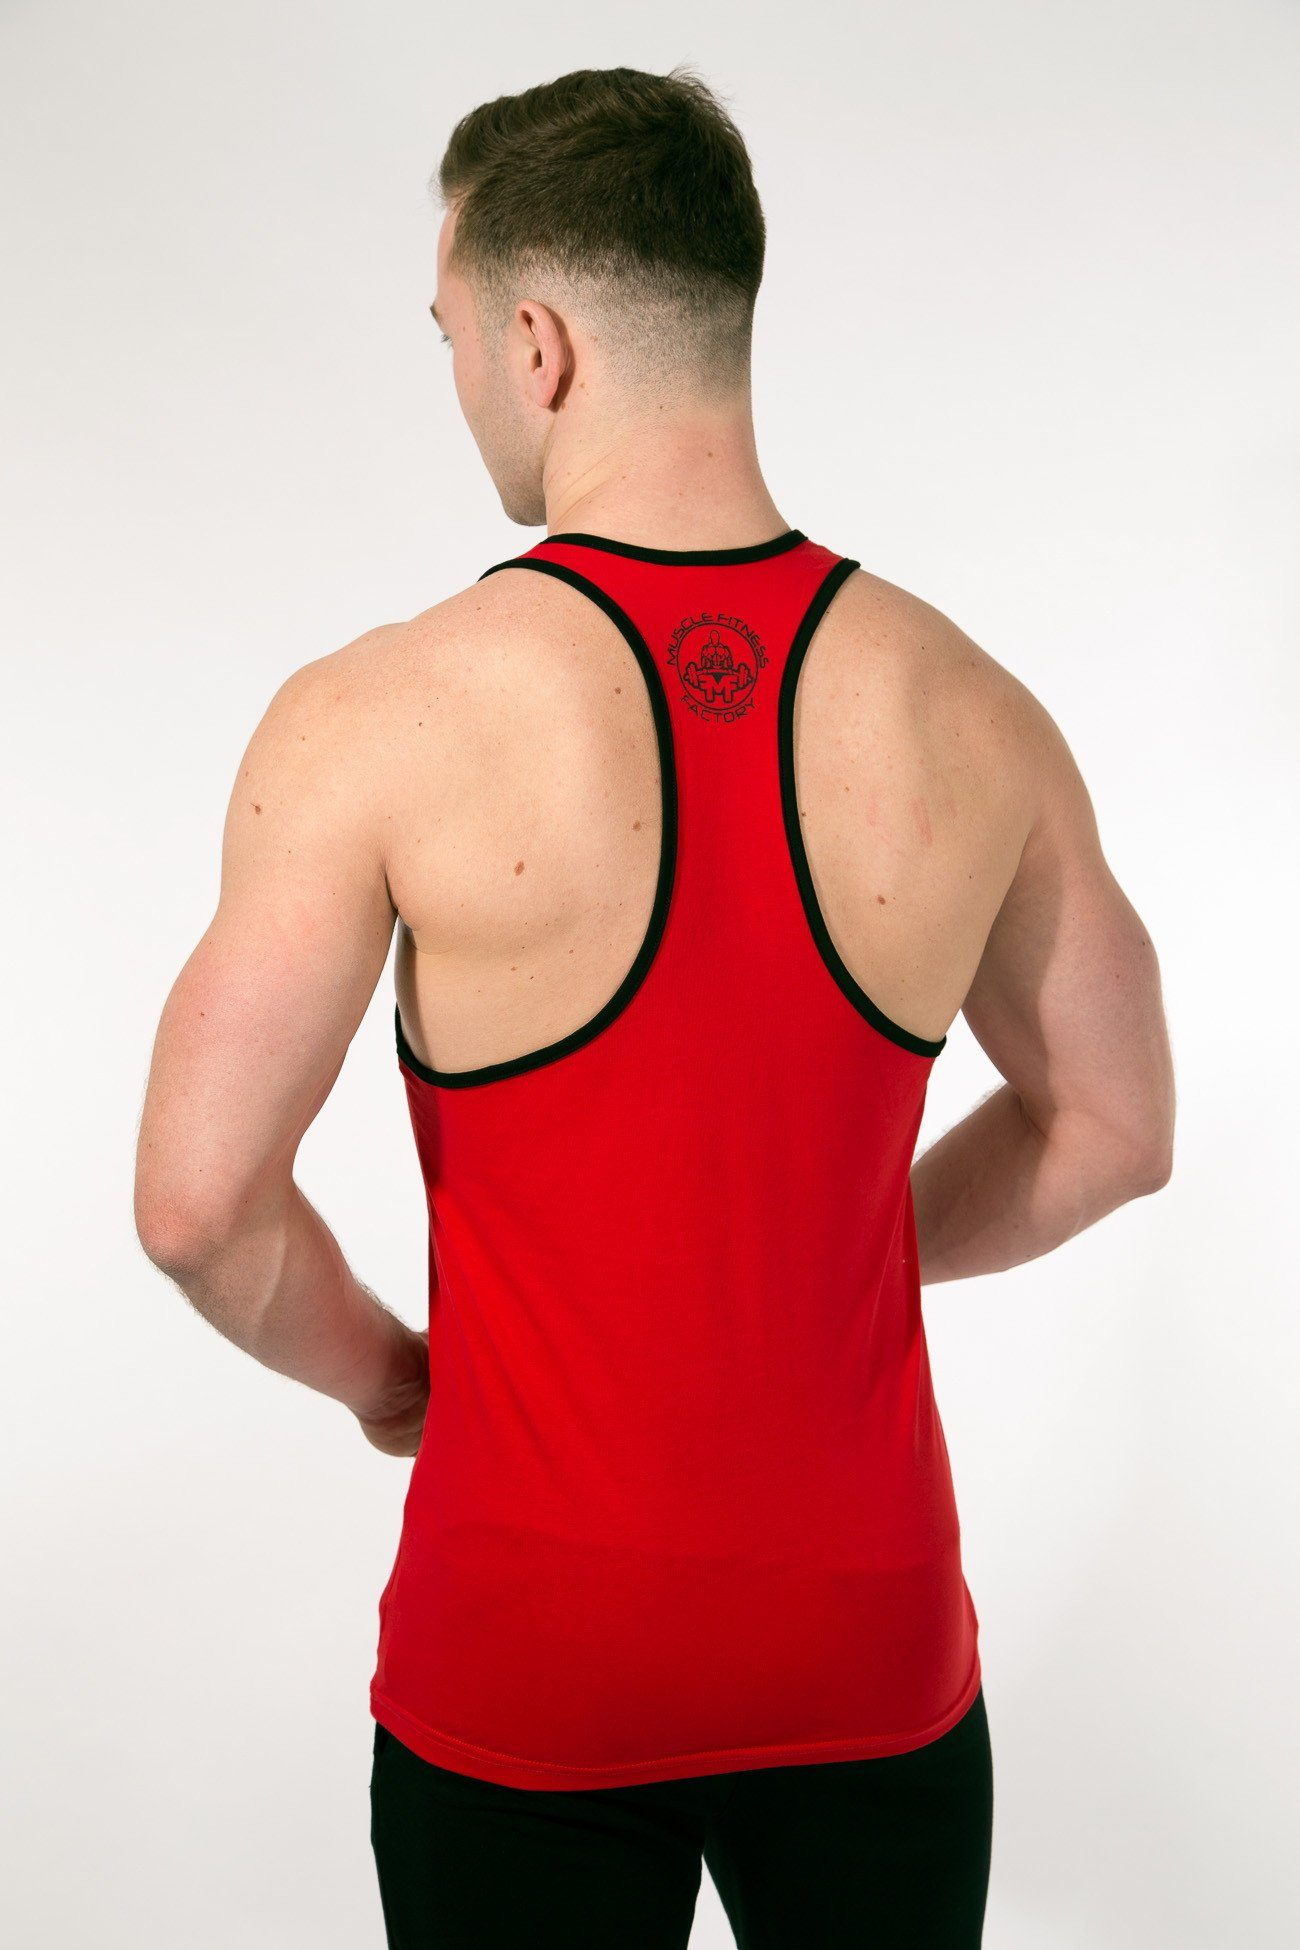 MFF Spartan Stringer <br> Red/Black - Muscle Fitness Factory